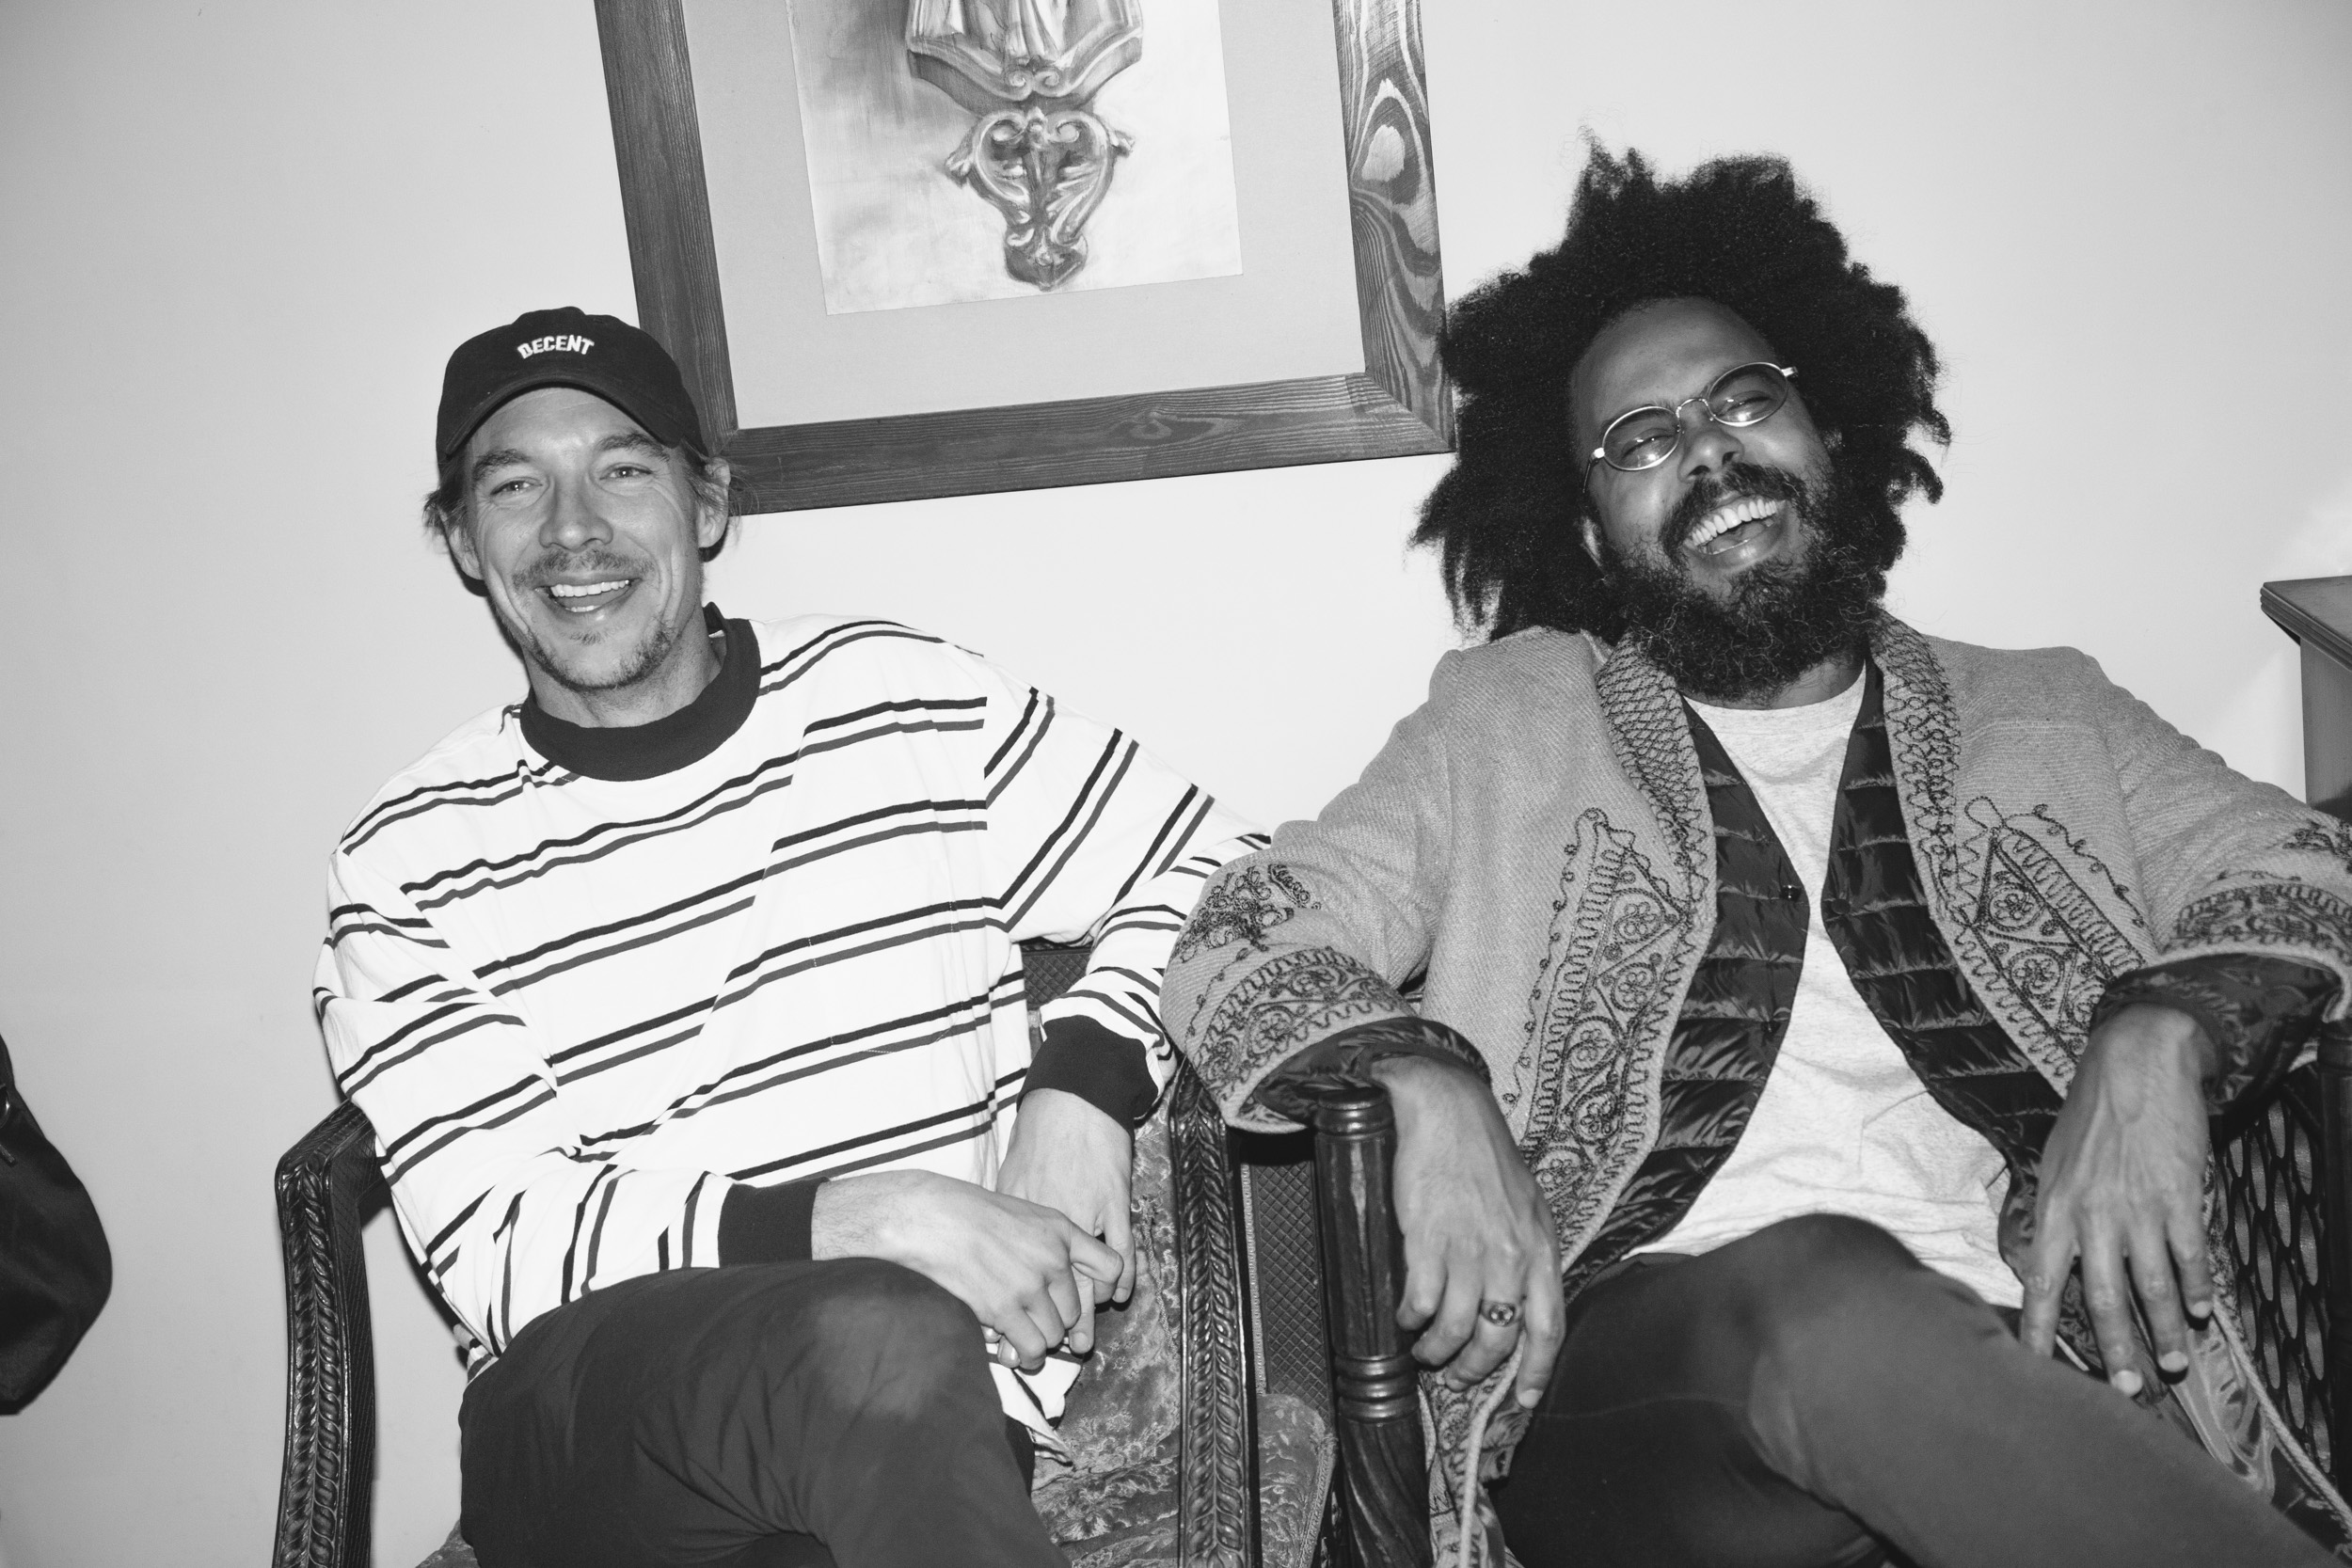 Diplo and Jillionaire, 2am